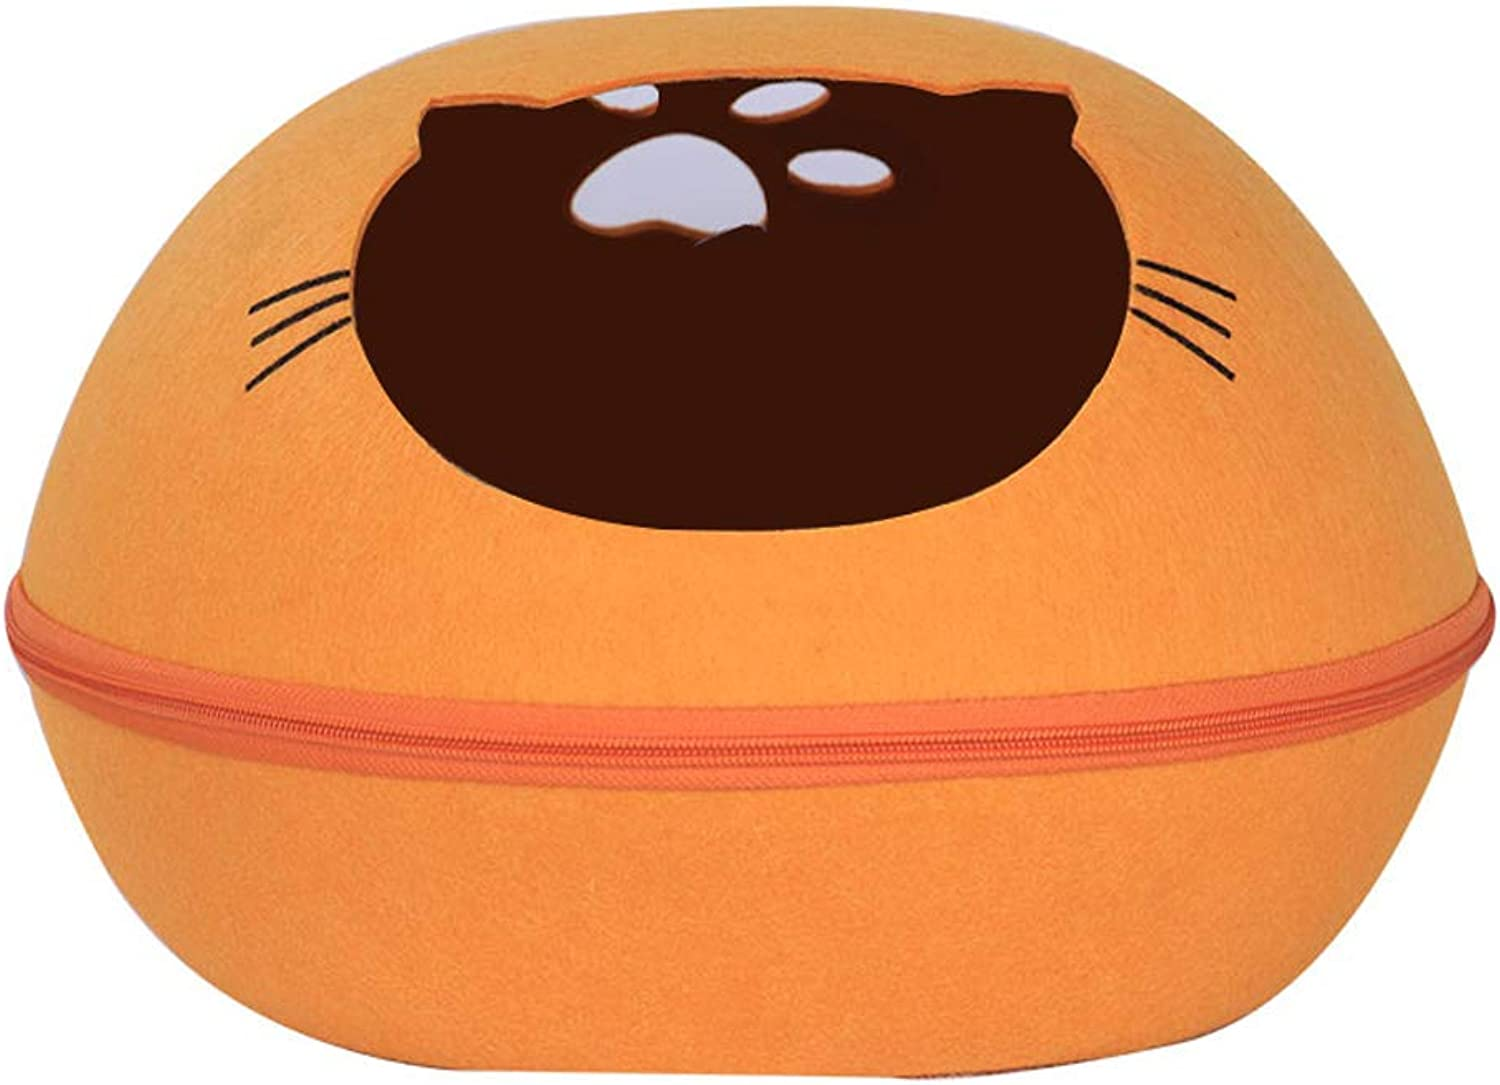 LITING Cat Litter Four Seasons Universal Removable and Washable Cat House Kennel Pet Nest Autumn and Winter SemiClosed Cat Bed Supplies (color   orange)